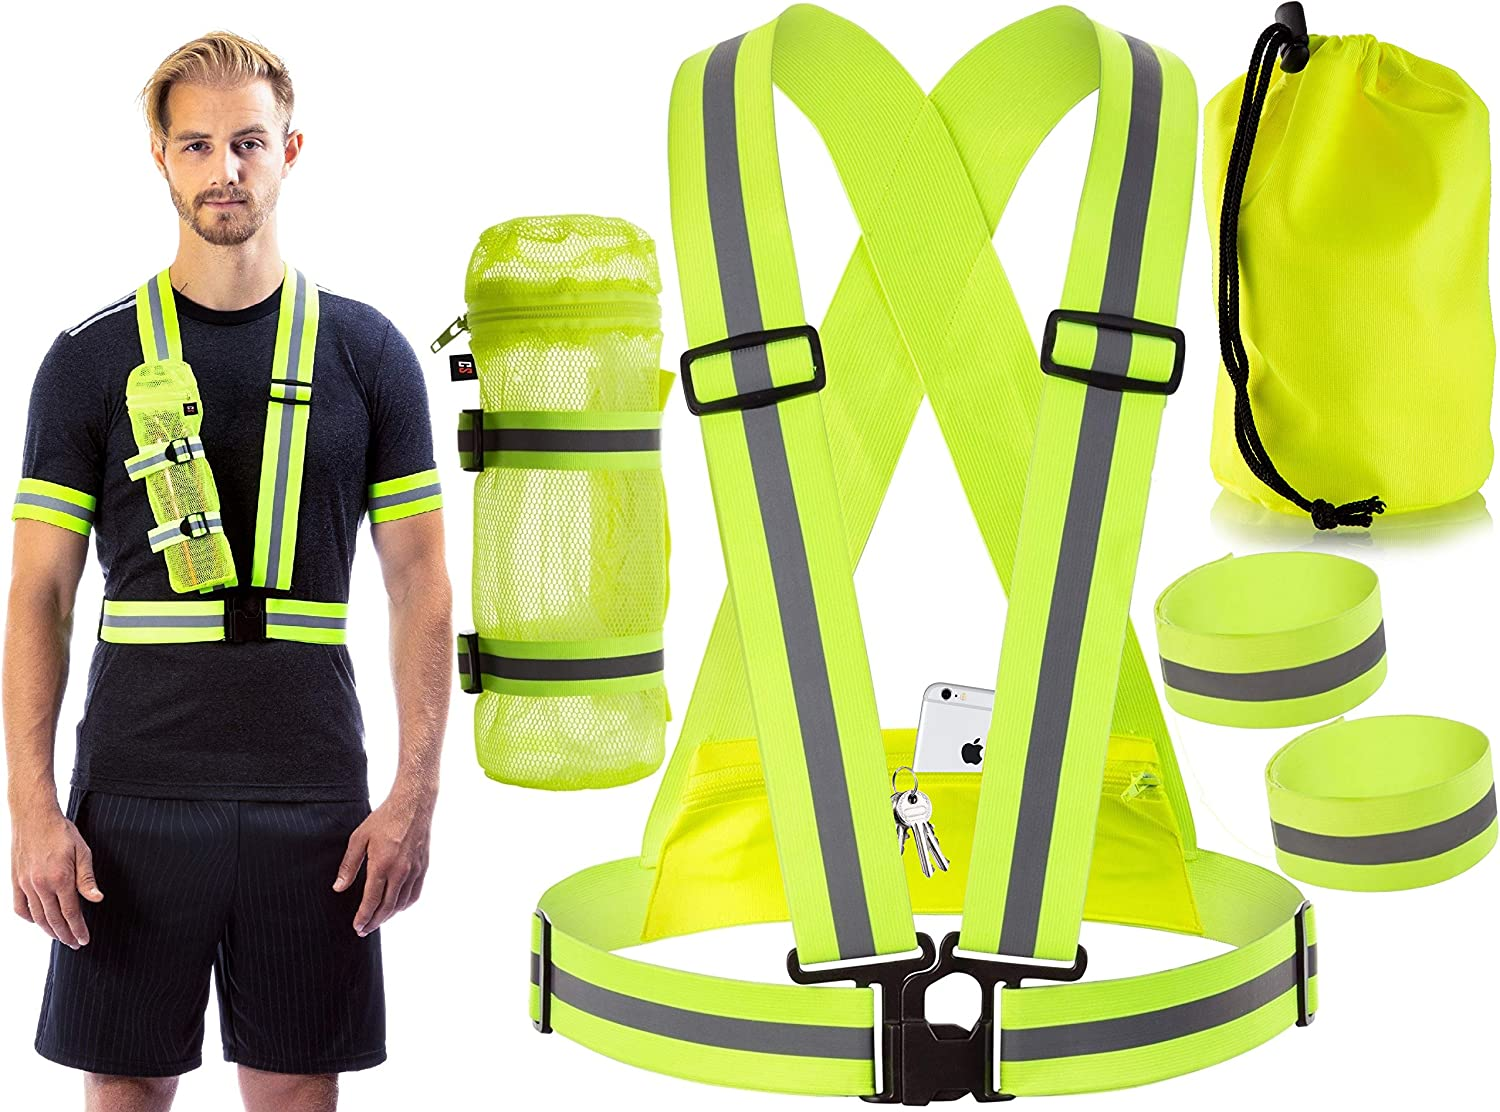 Selling and Our shop most popular selling Clinch Star Reflective Gear for Running Cycling at wit Night